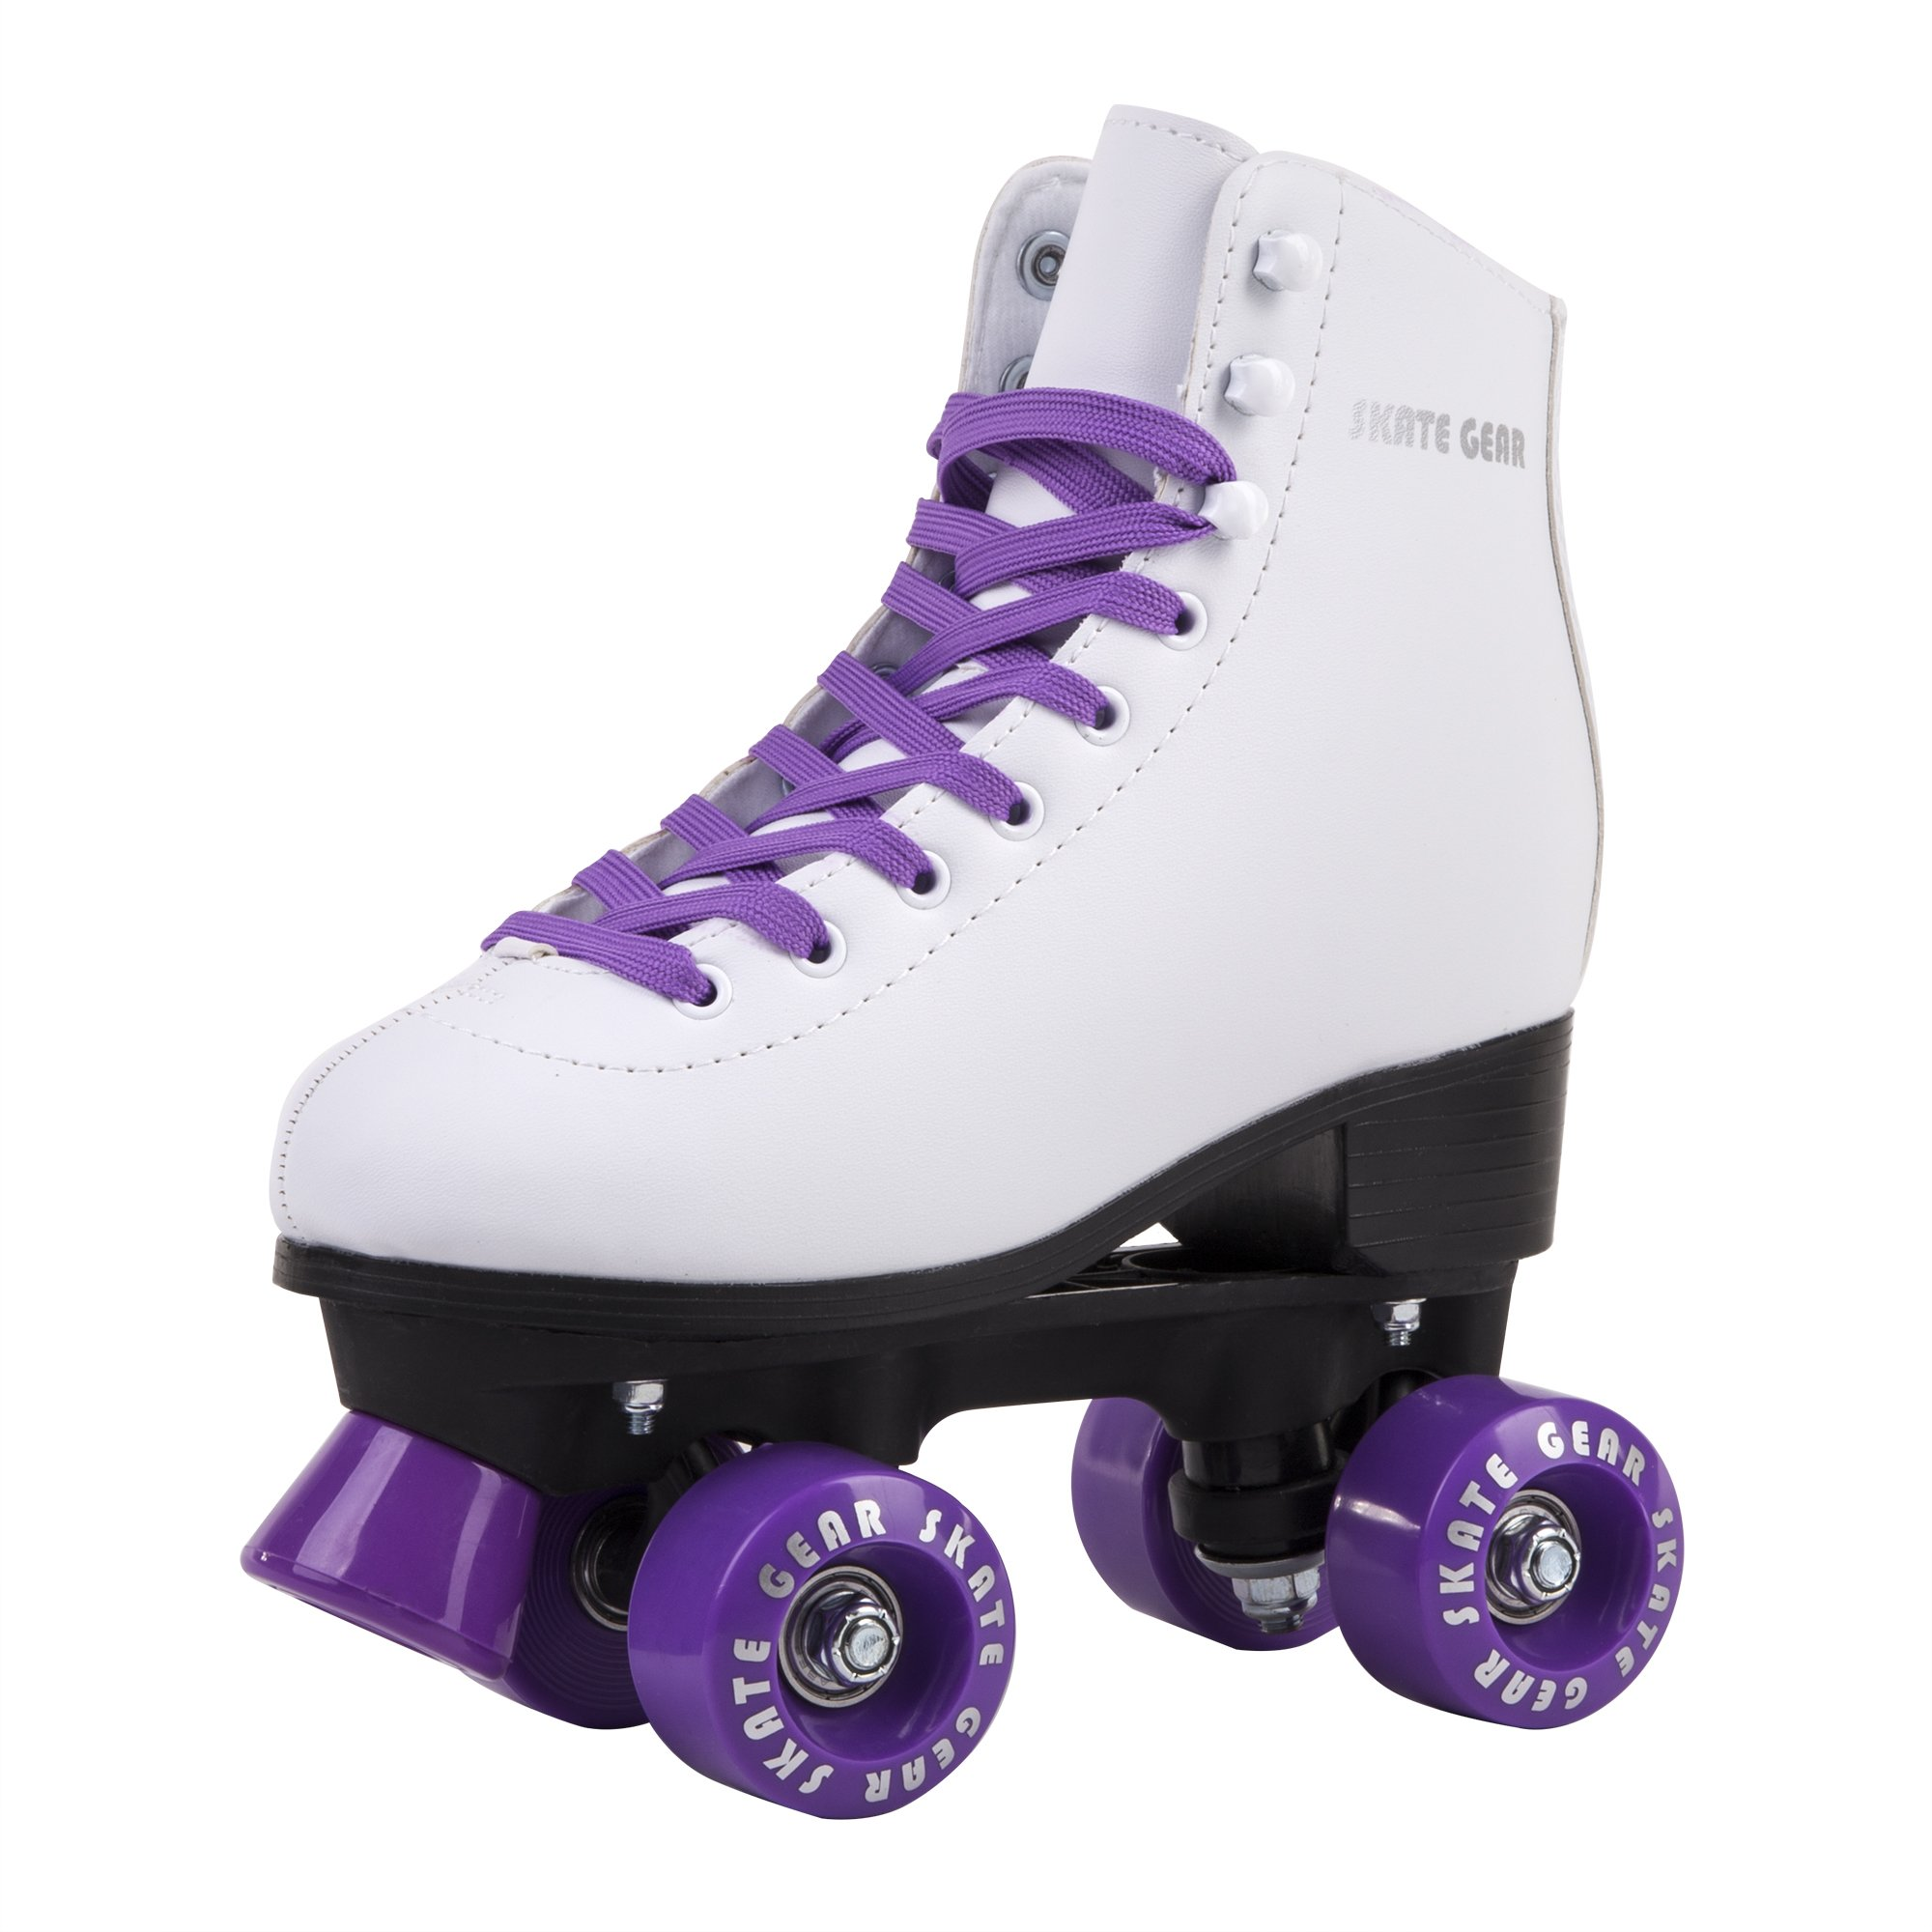 Cal 7 All-Purpose Indoor Outdoor Speedy Roller Skate for Youth and Adults (Purple, Youth 4 / Women's 5)